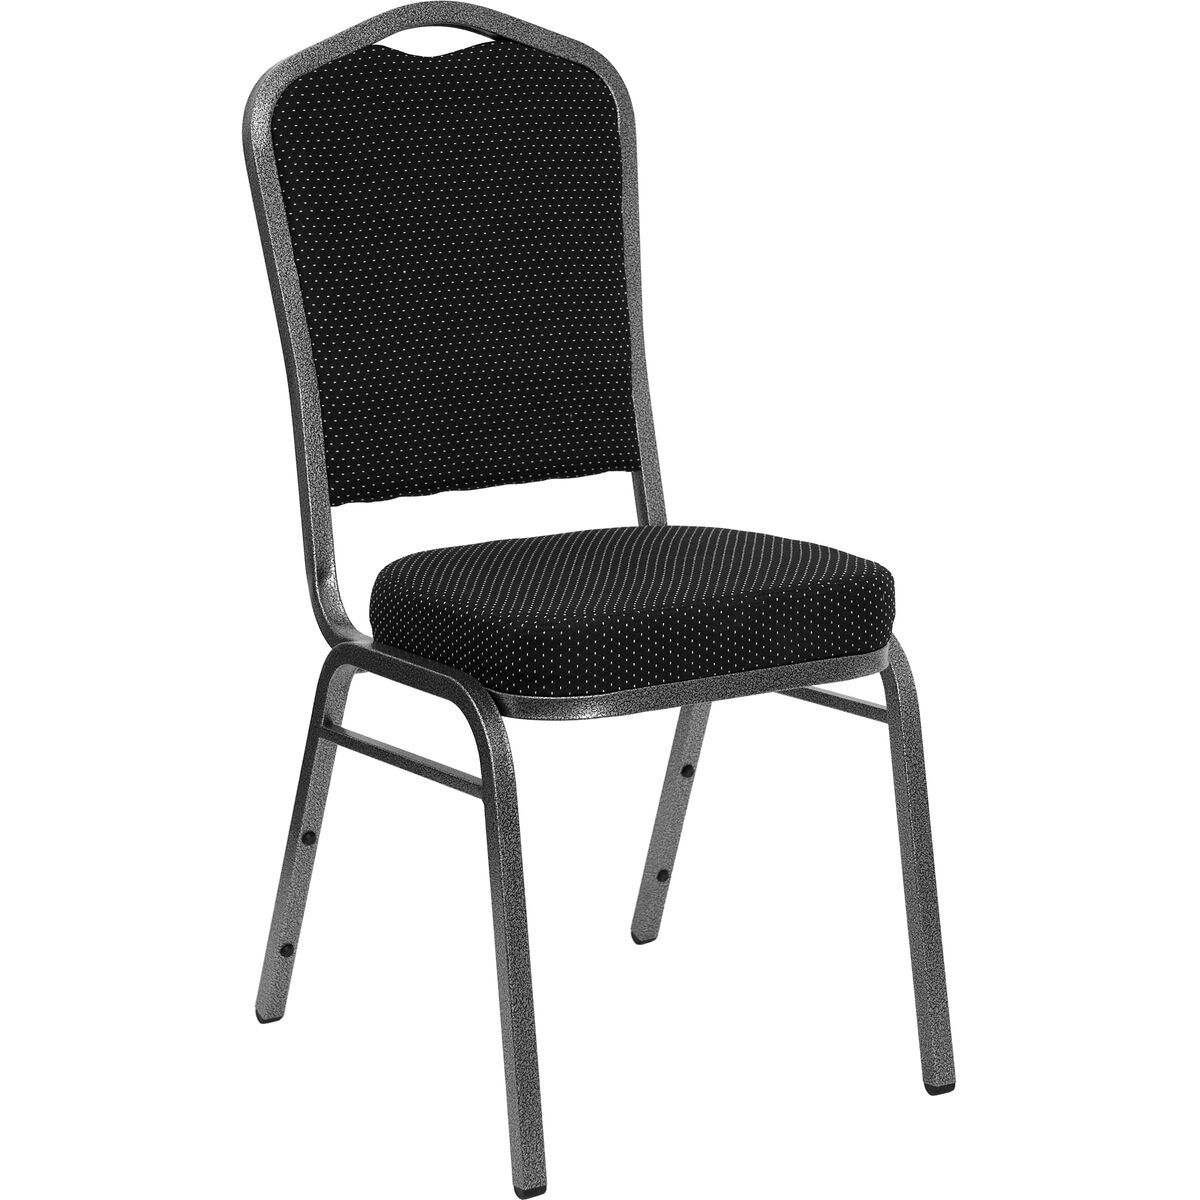 Crown Back Stacking Banquet Chair in Black Dot Patterned Fabric Silver Frame